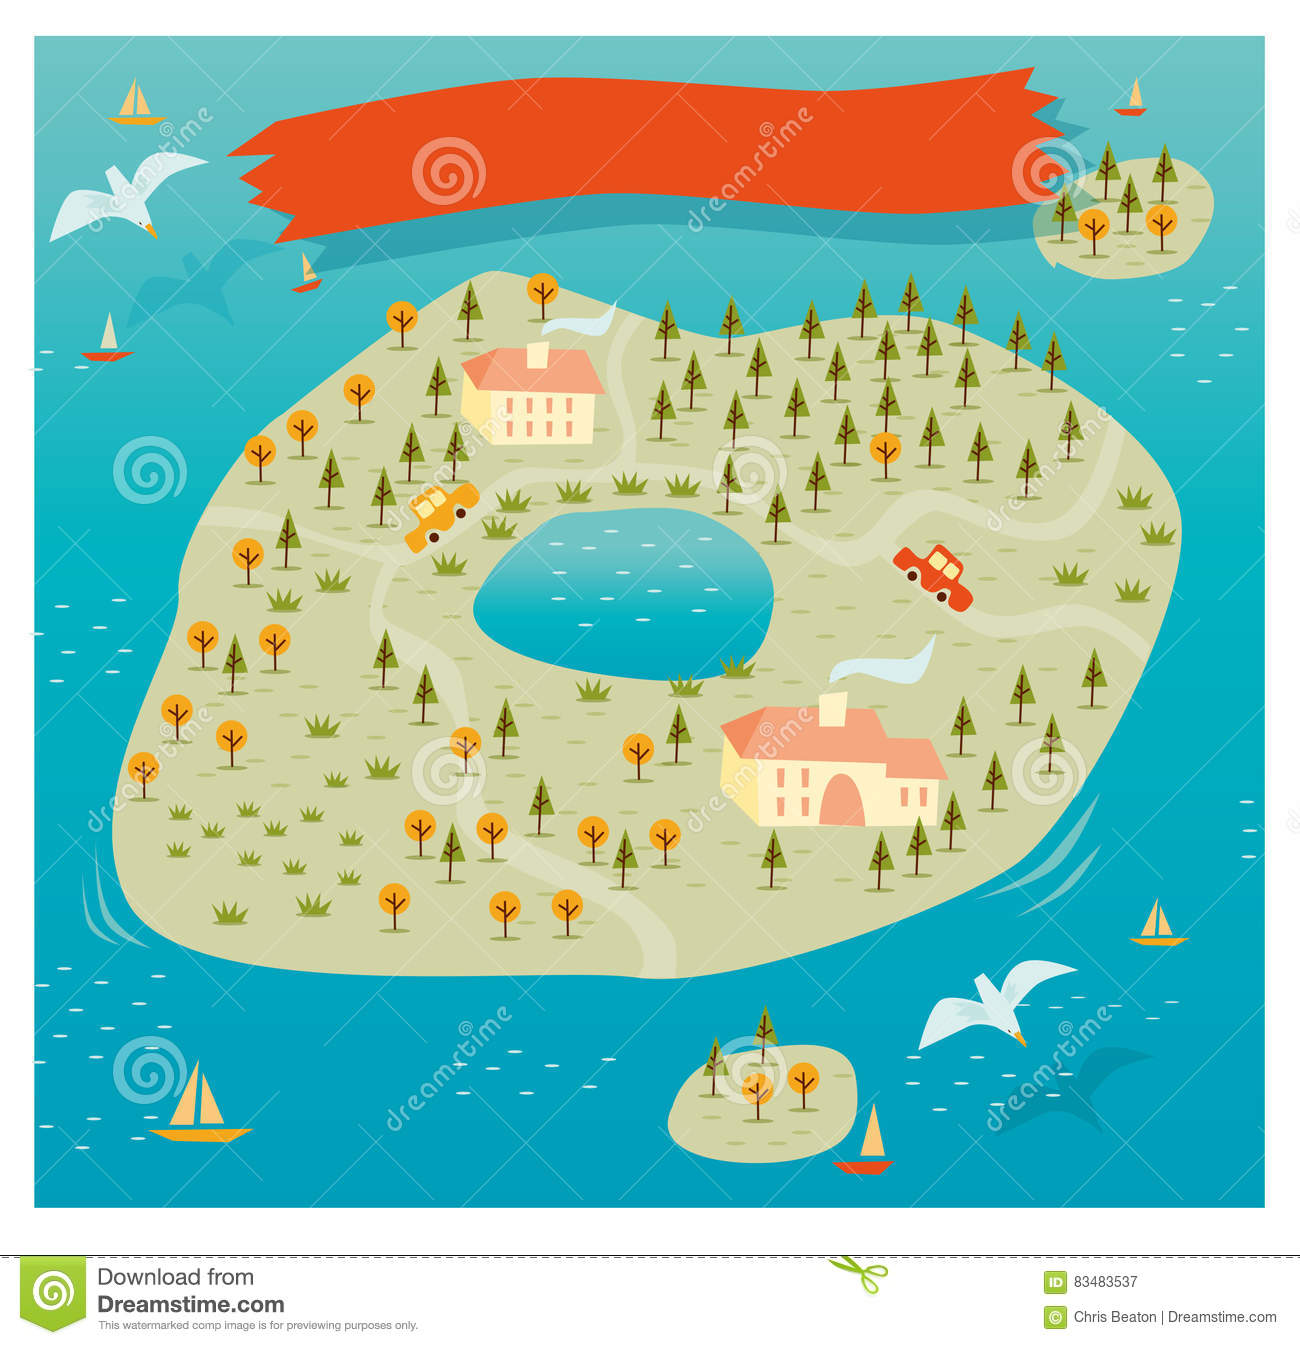 Design Your Own Island Map Island Map Vector stock vector. Illustration of maritime   83483537